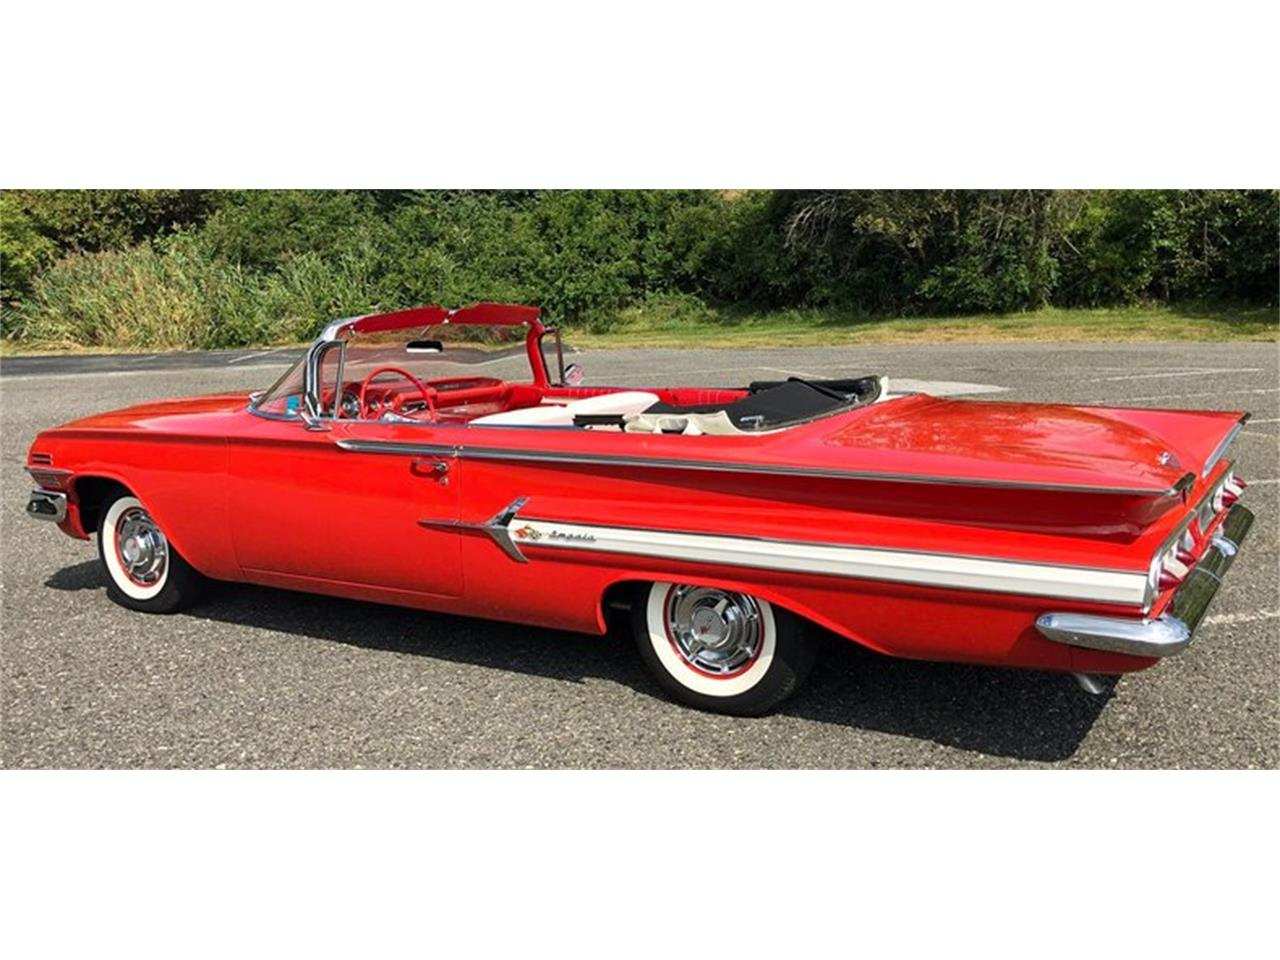 1960 Chevrolet Impala (CC-1261045) for sale in West Chester, Pennsylvania